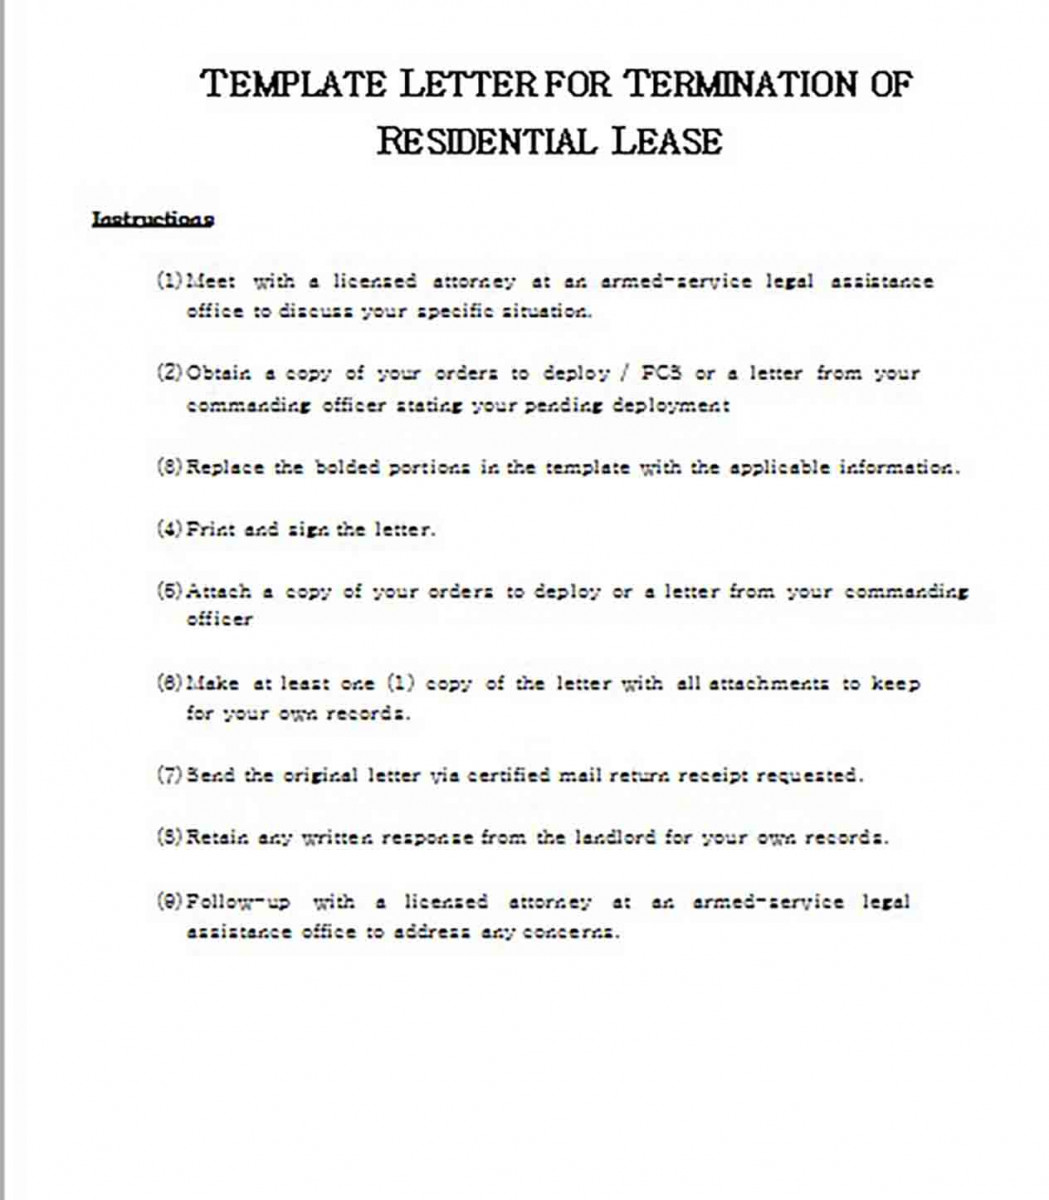 templates Letter for Termination of Residential Lease1